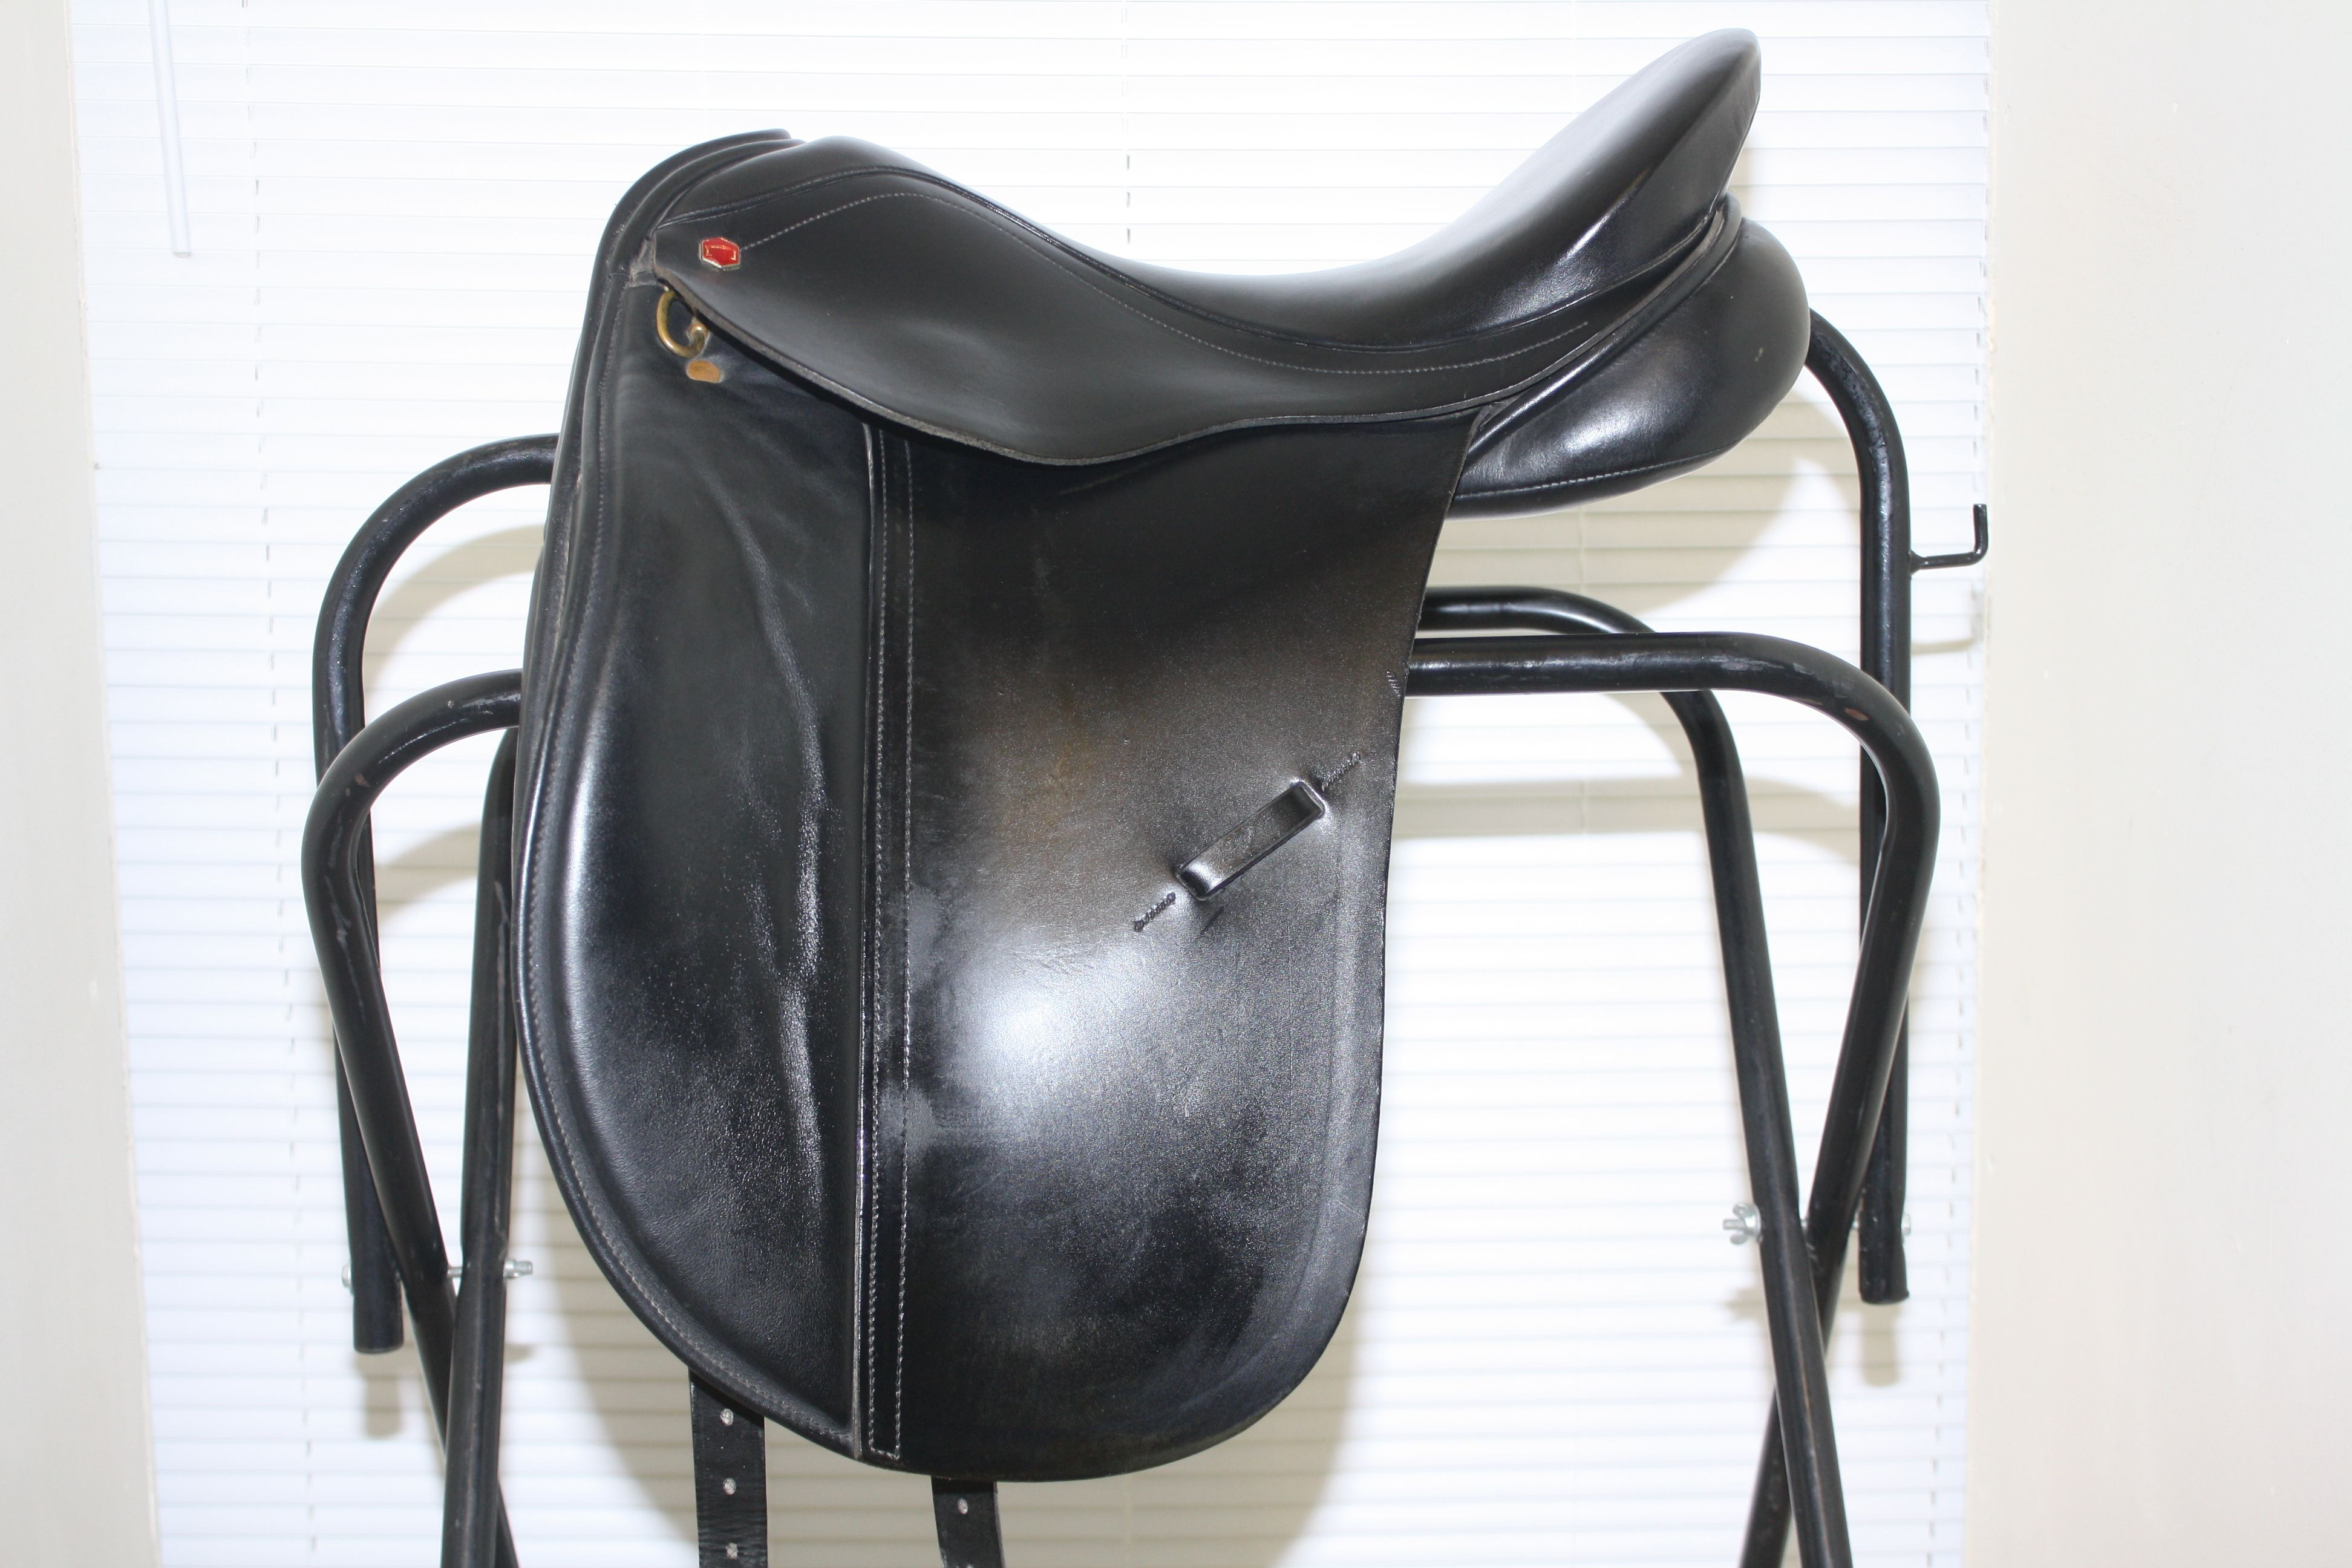 Hy Hunting Breastplate fully adjustable High quality leather